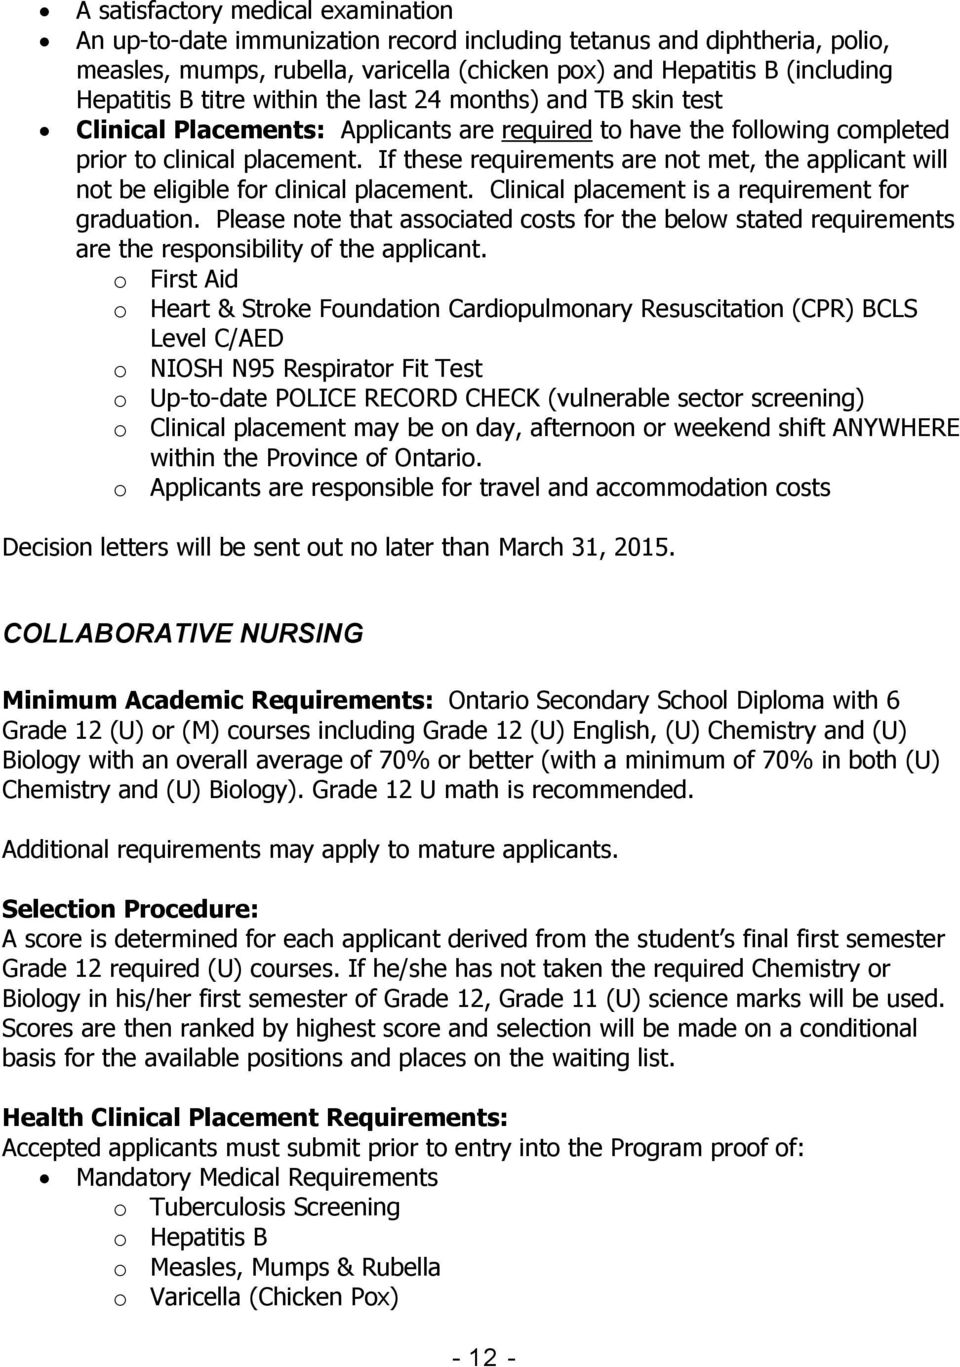 If these requirements are not met, the applicant will not be eligible for clinical placement. Clinical placement is a requirement for graduation.